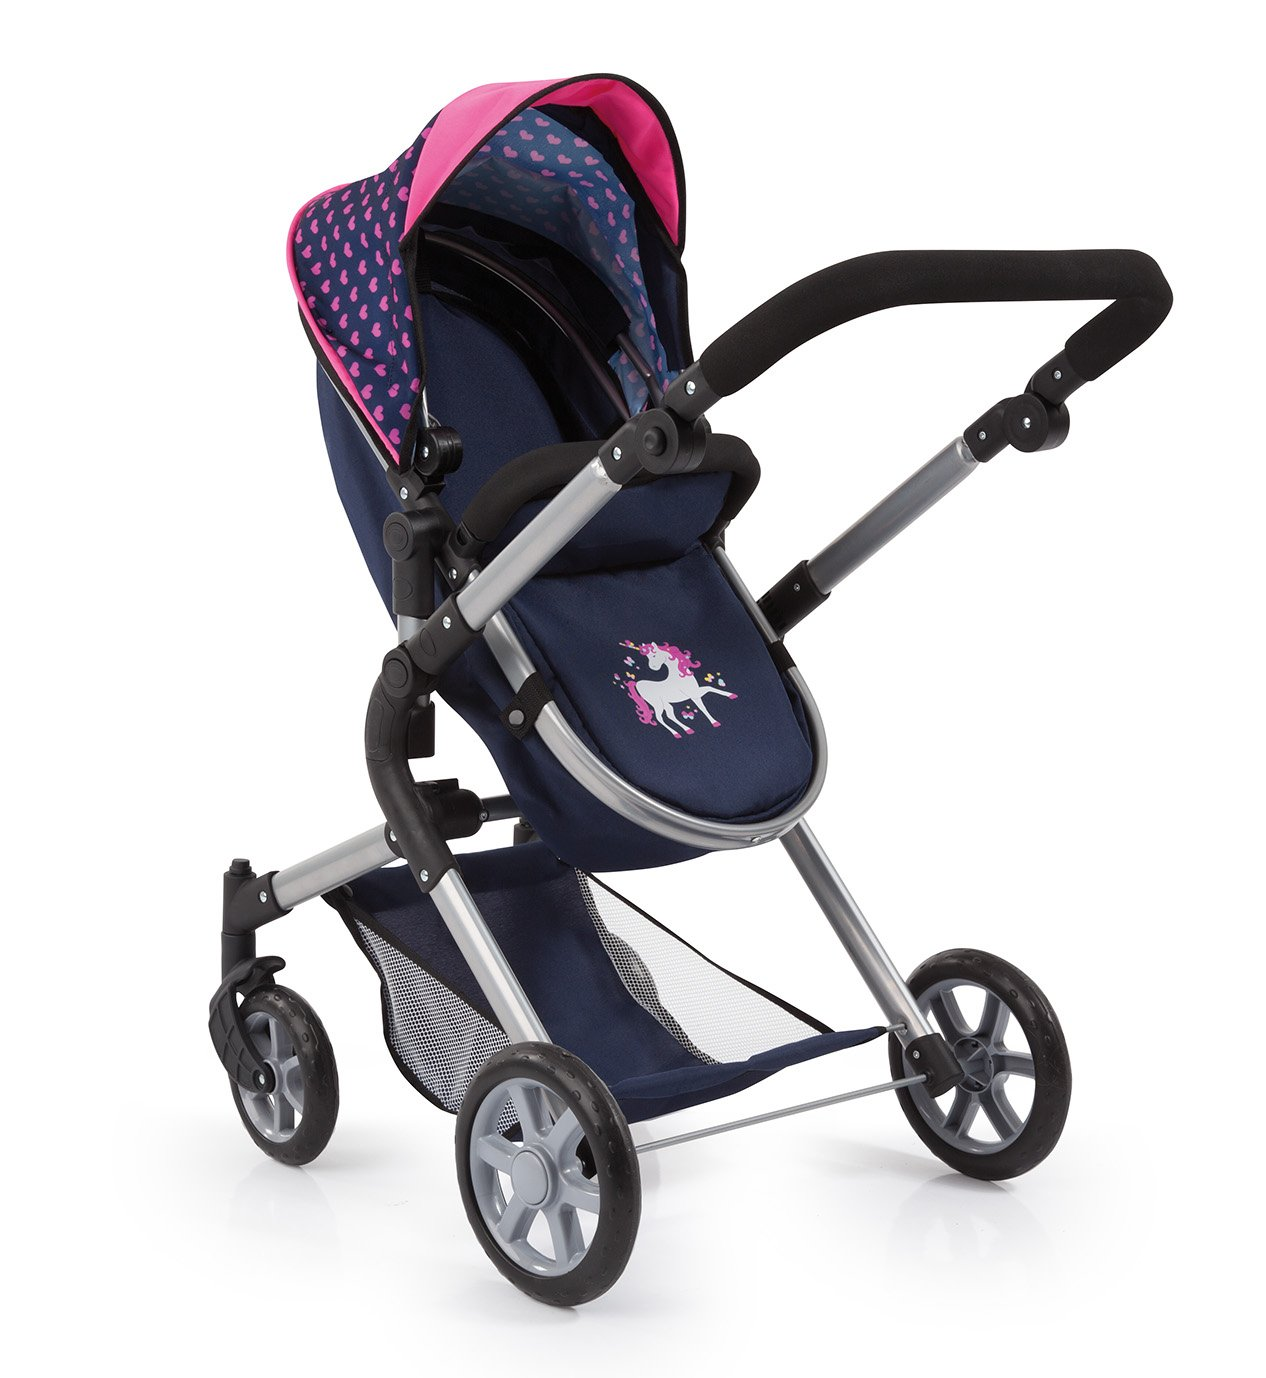 Bayer Design 18154AA City Neo Dolls Pram with Changing Bag, Blue/Pink by Bayer (Image #2)